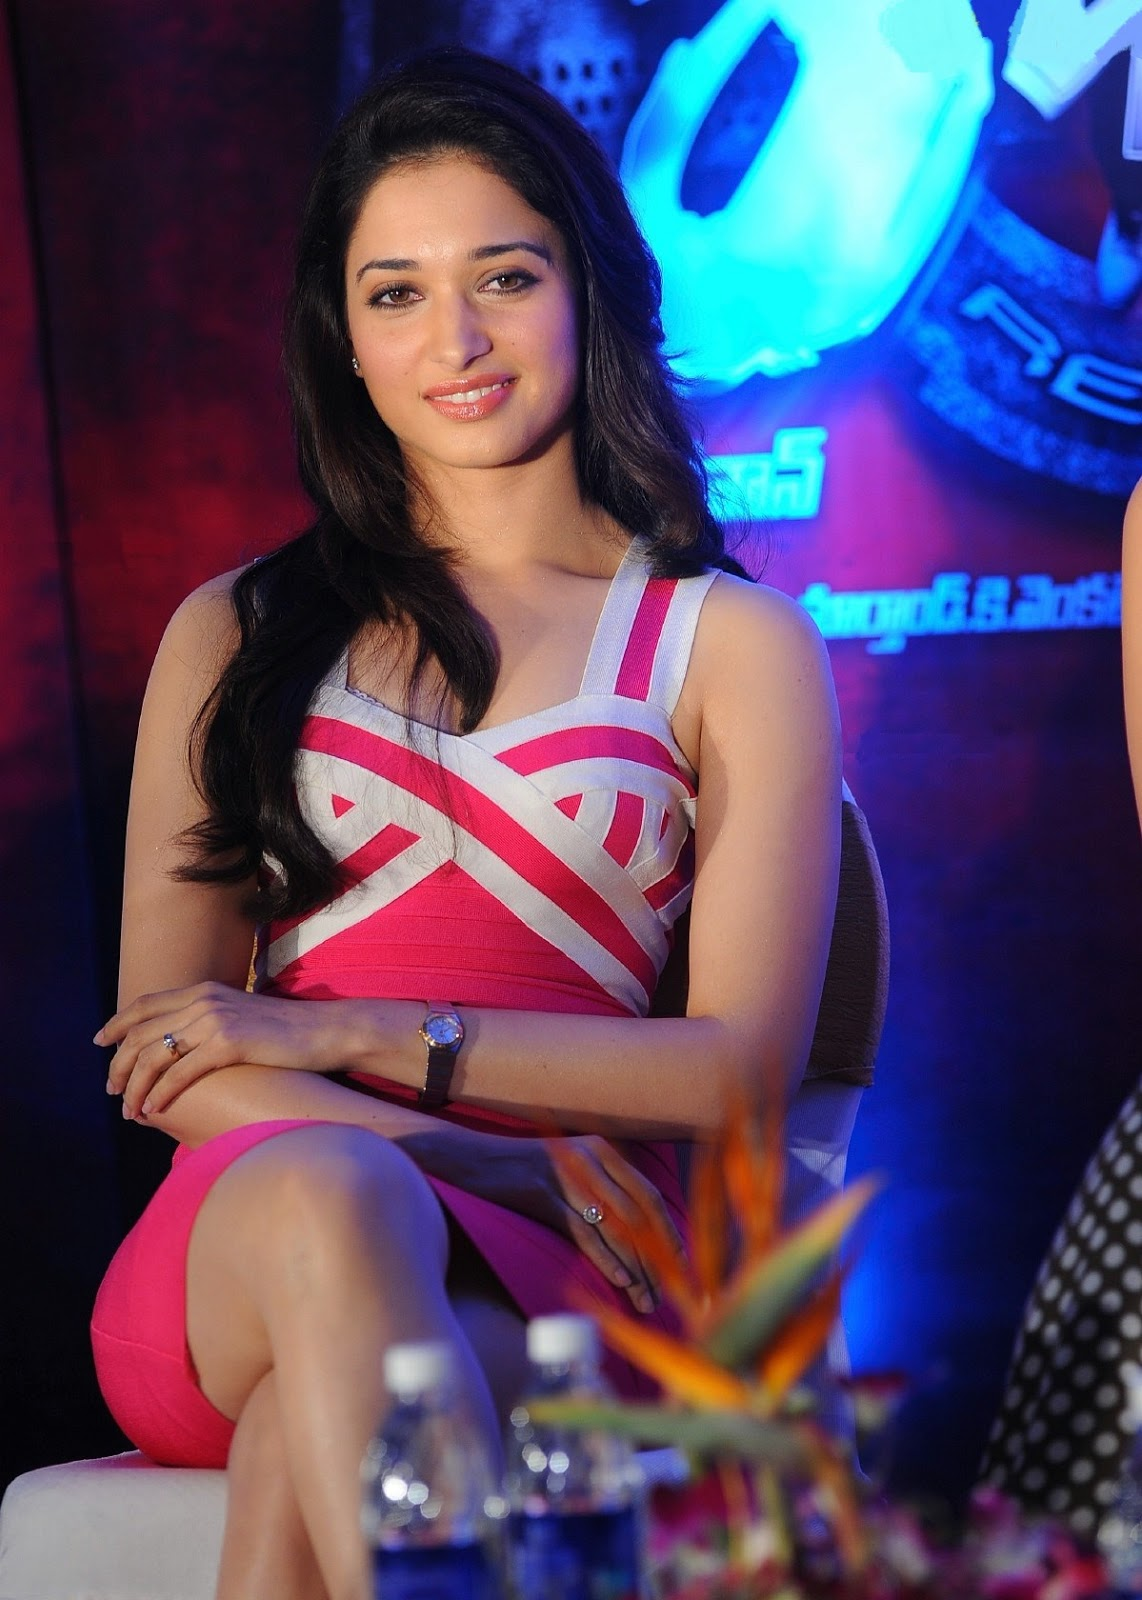 High Quality Bollywood Celebrity Pictures: Tamanna Bhatia Looks